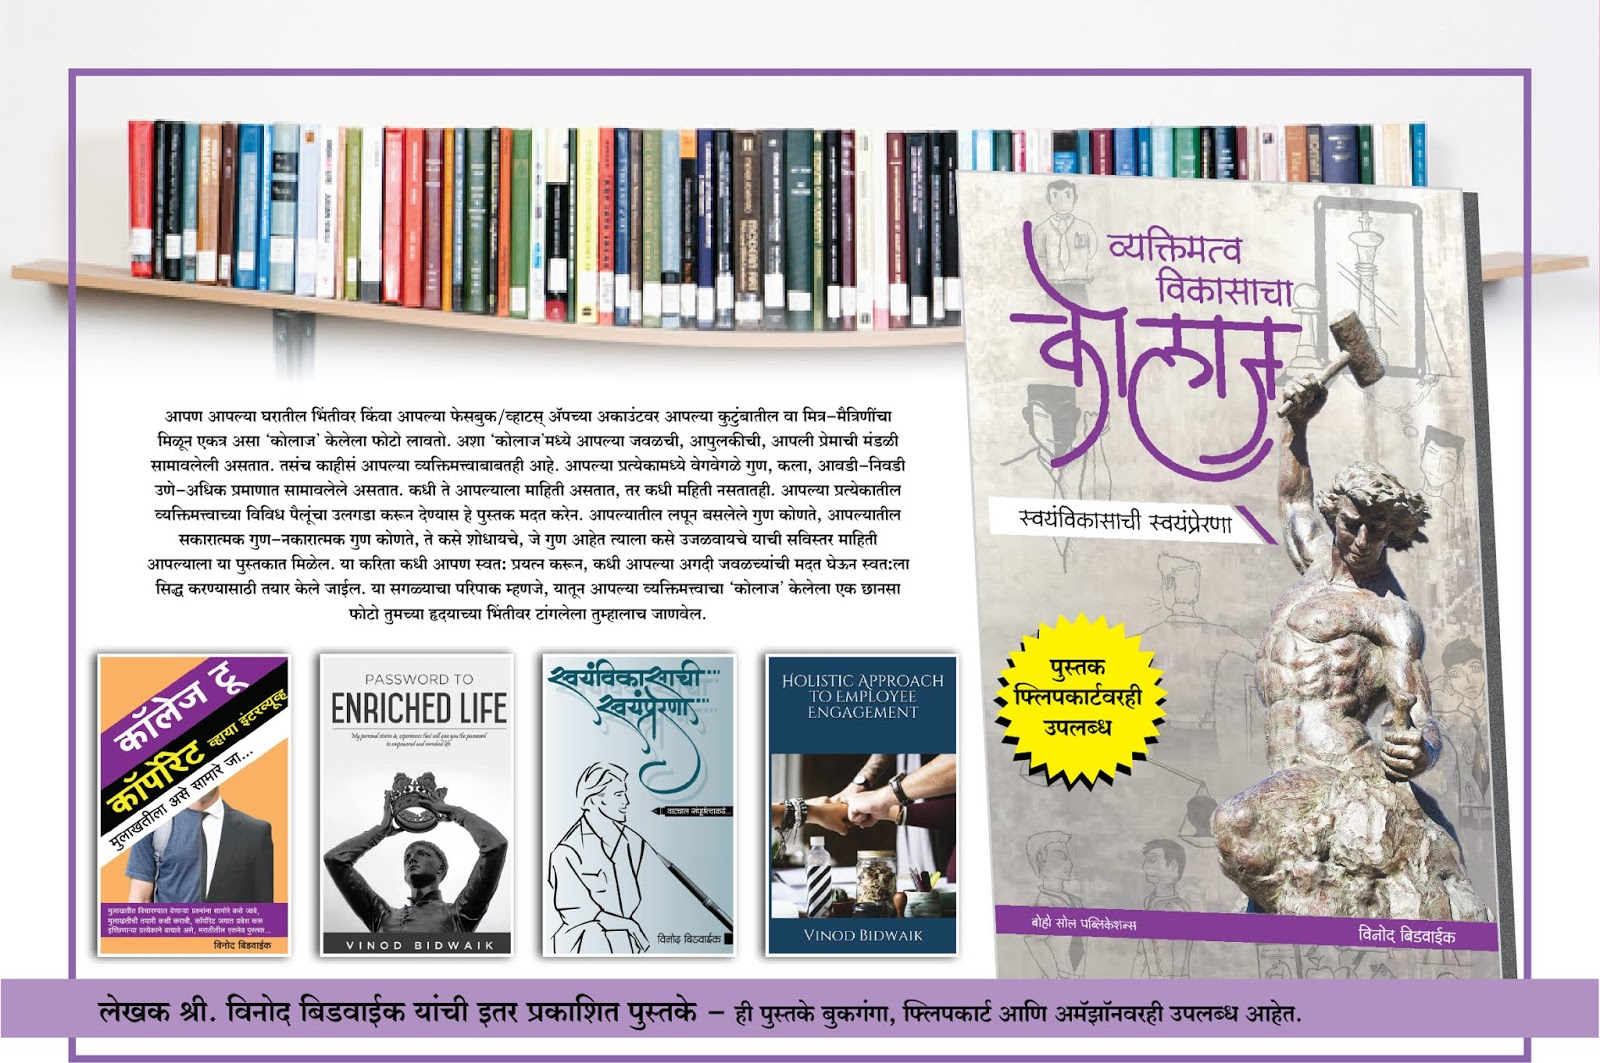 Books authored by Vinod Bidwaik